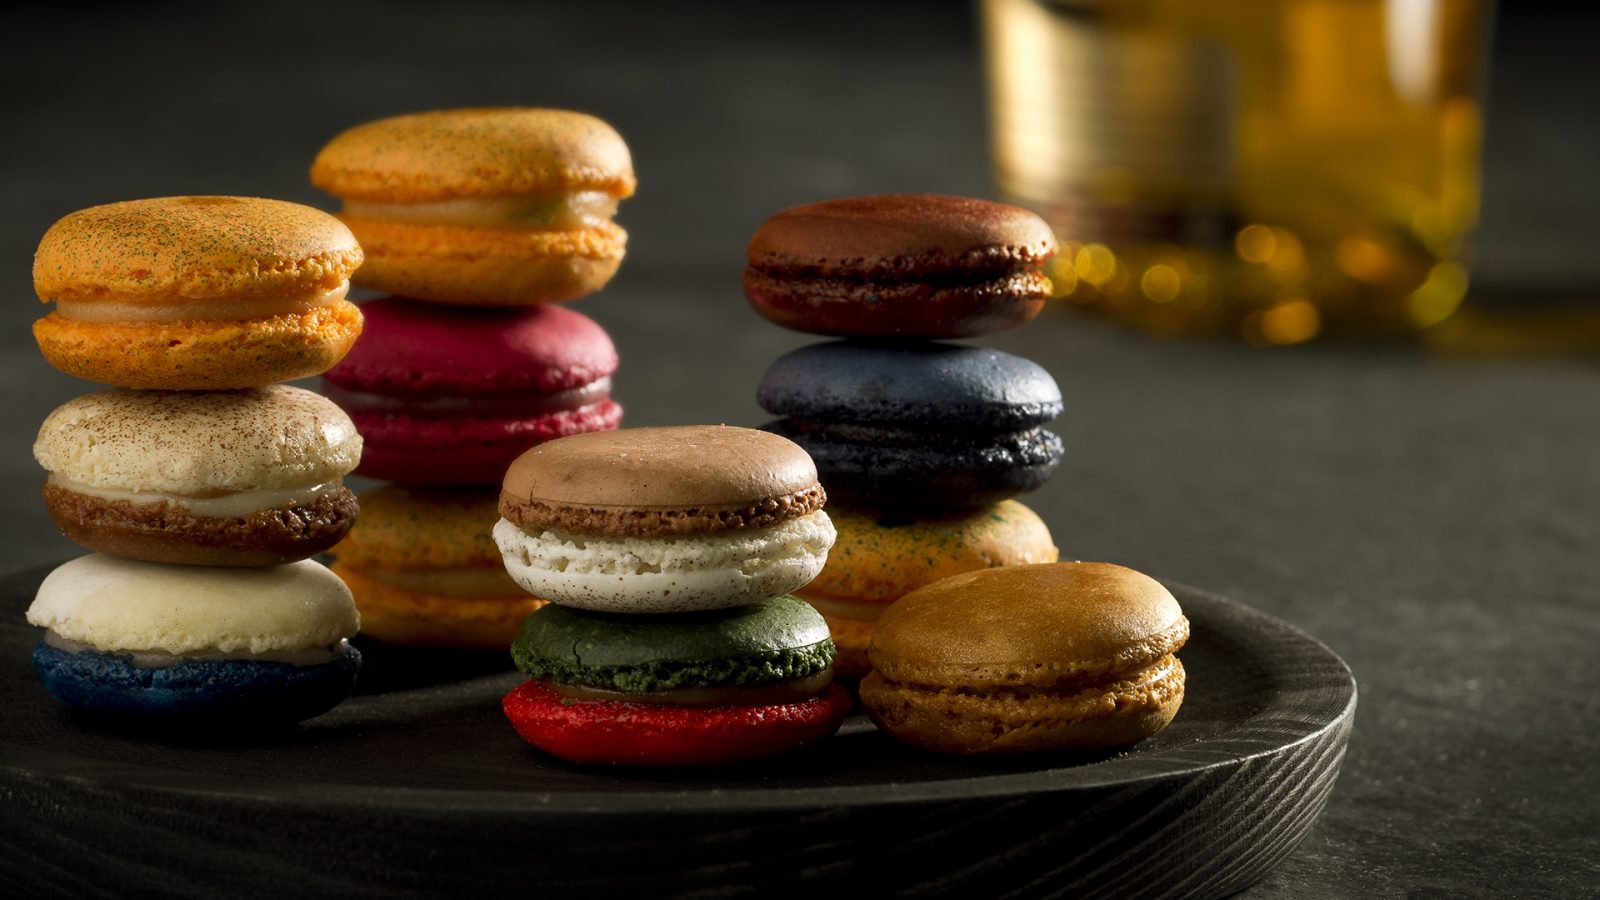 Macarons with orange and licor 43